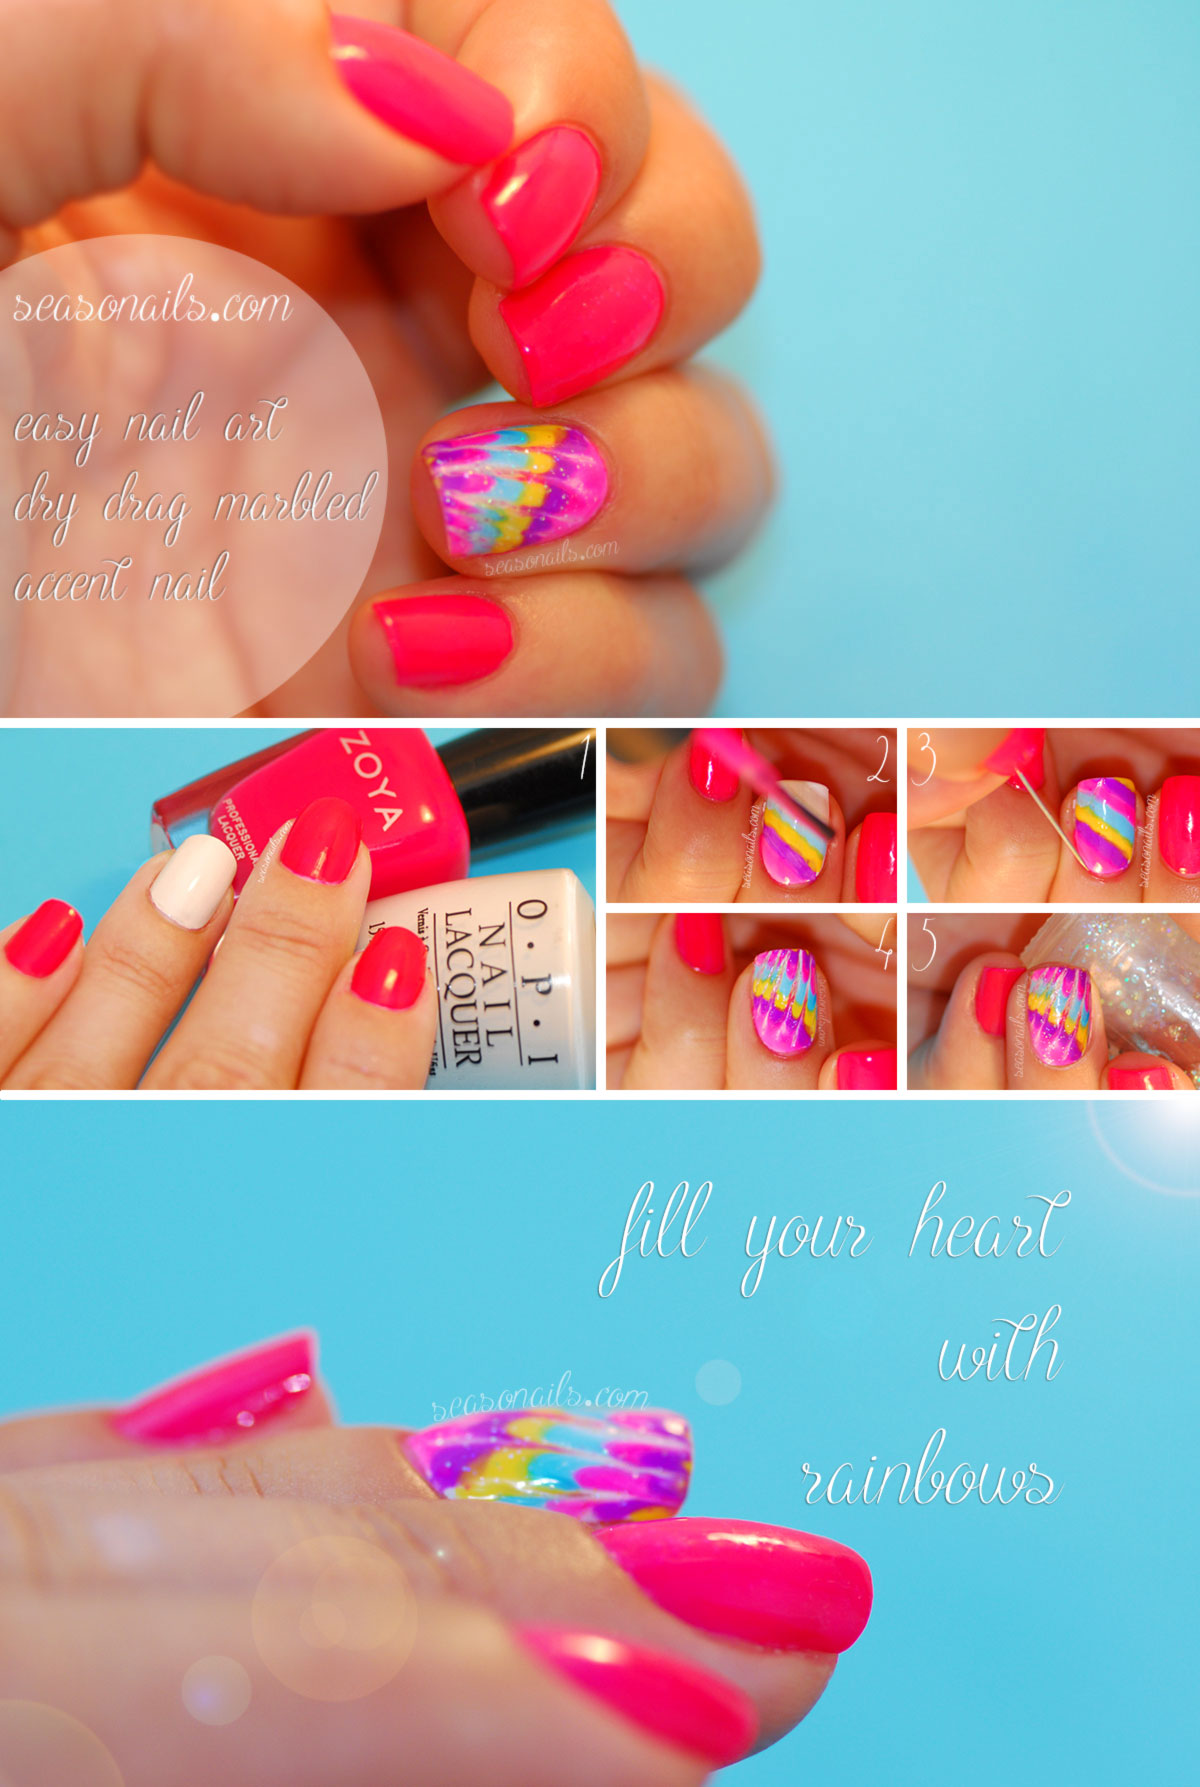 How to needle drag dry marbled nail art Seasonails